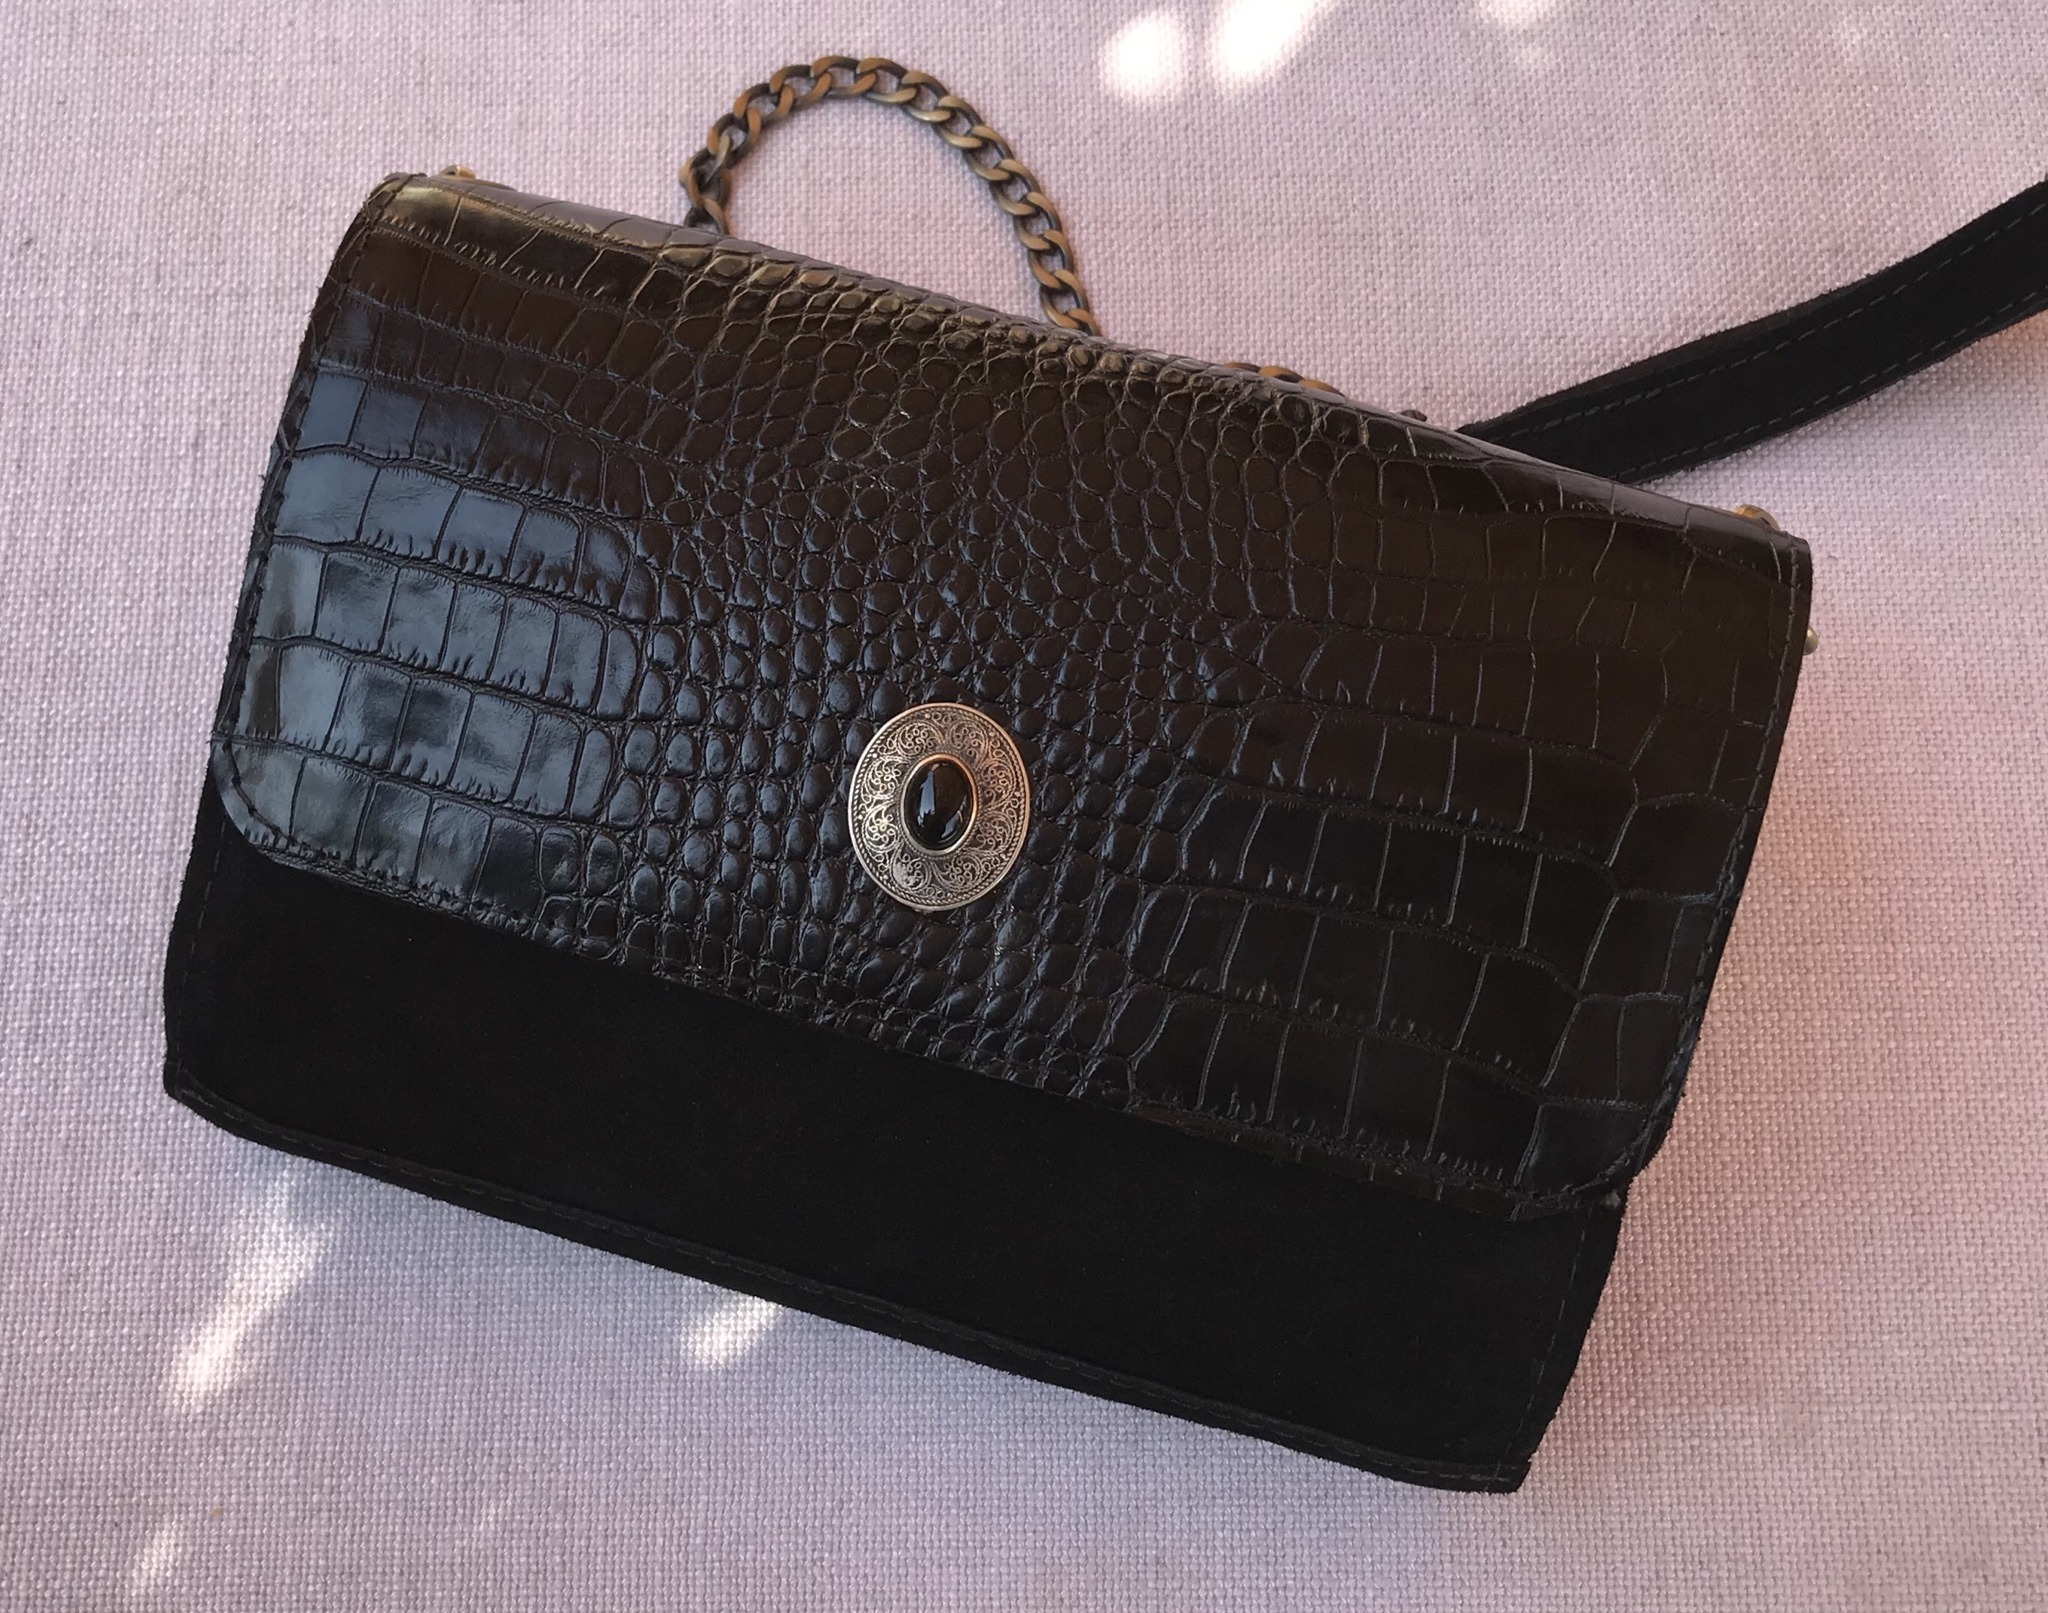 Jewelry bag leather croco & suede leather black